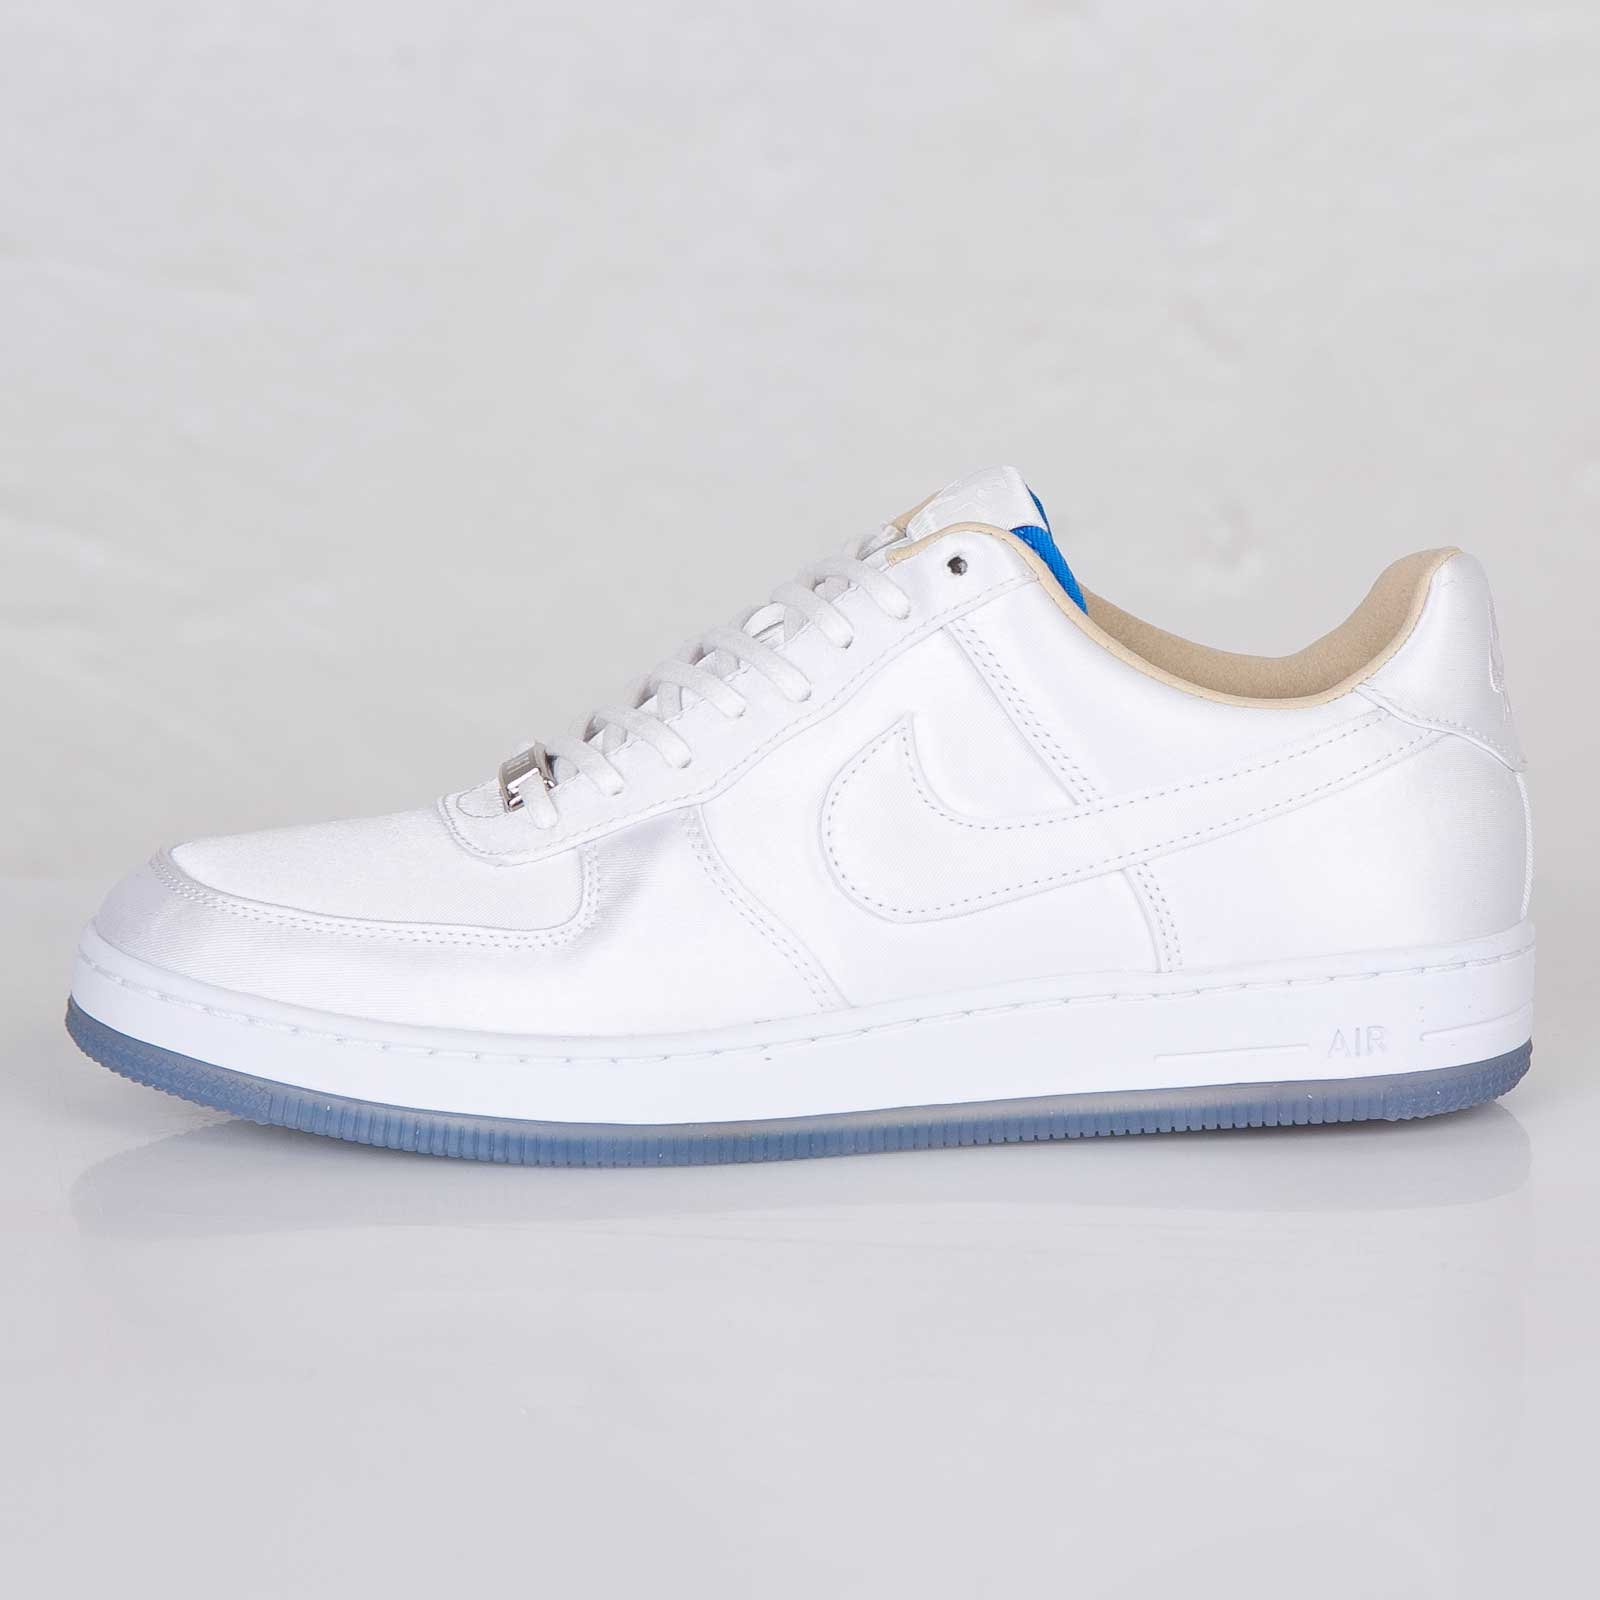 info for 7f5f9 222d9 3fb3f 871a5; release date nike air force 1 downtown qs 0c357 64c7c